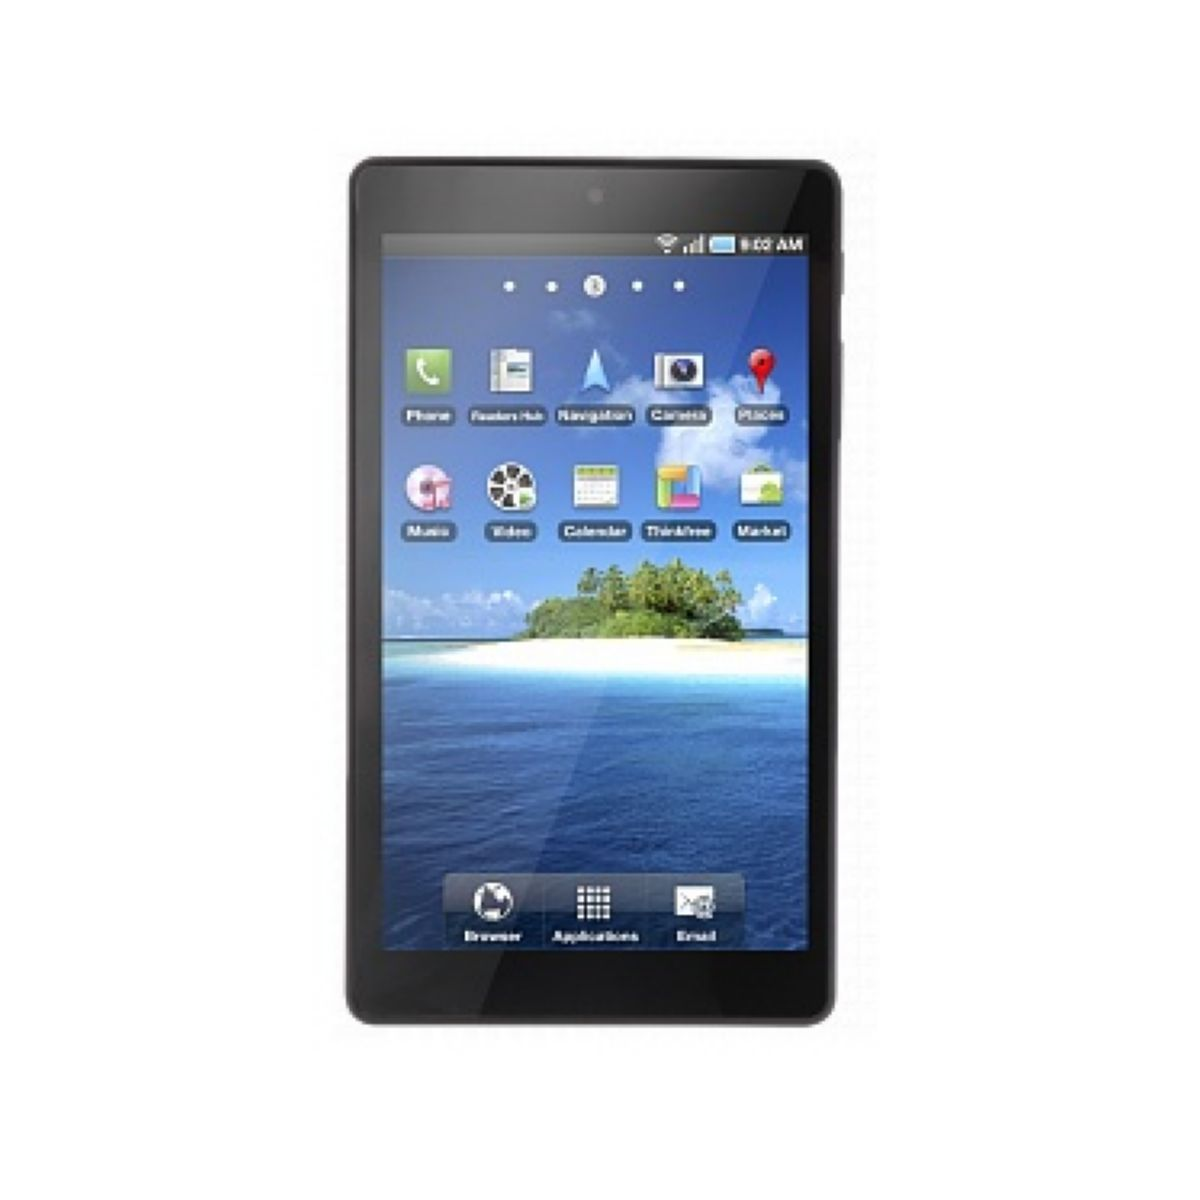 "Tablet Alcatel Pixi 4 8063 7"" Volcano Black"